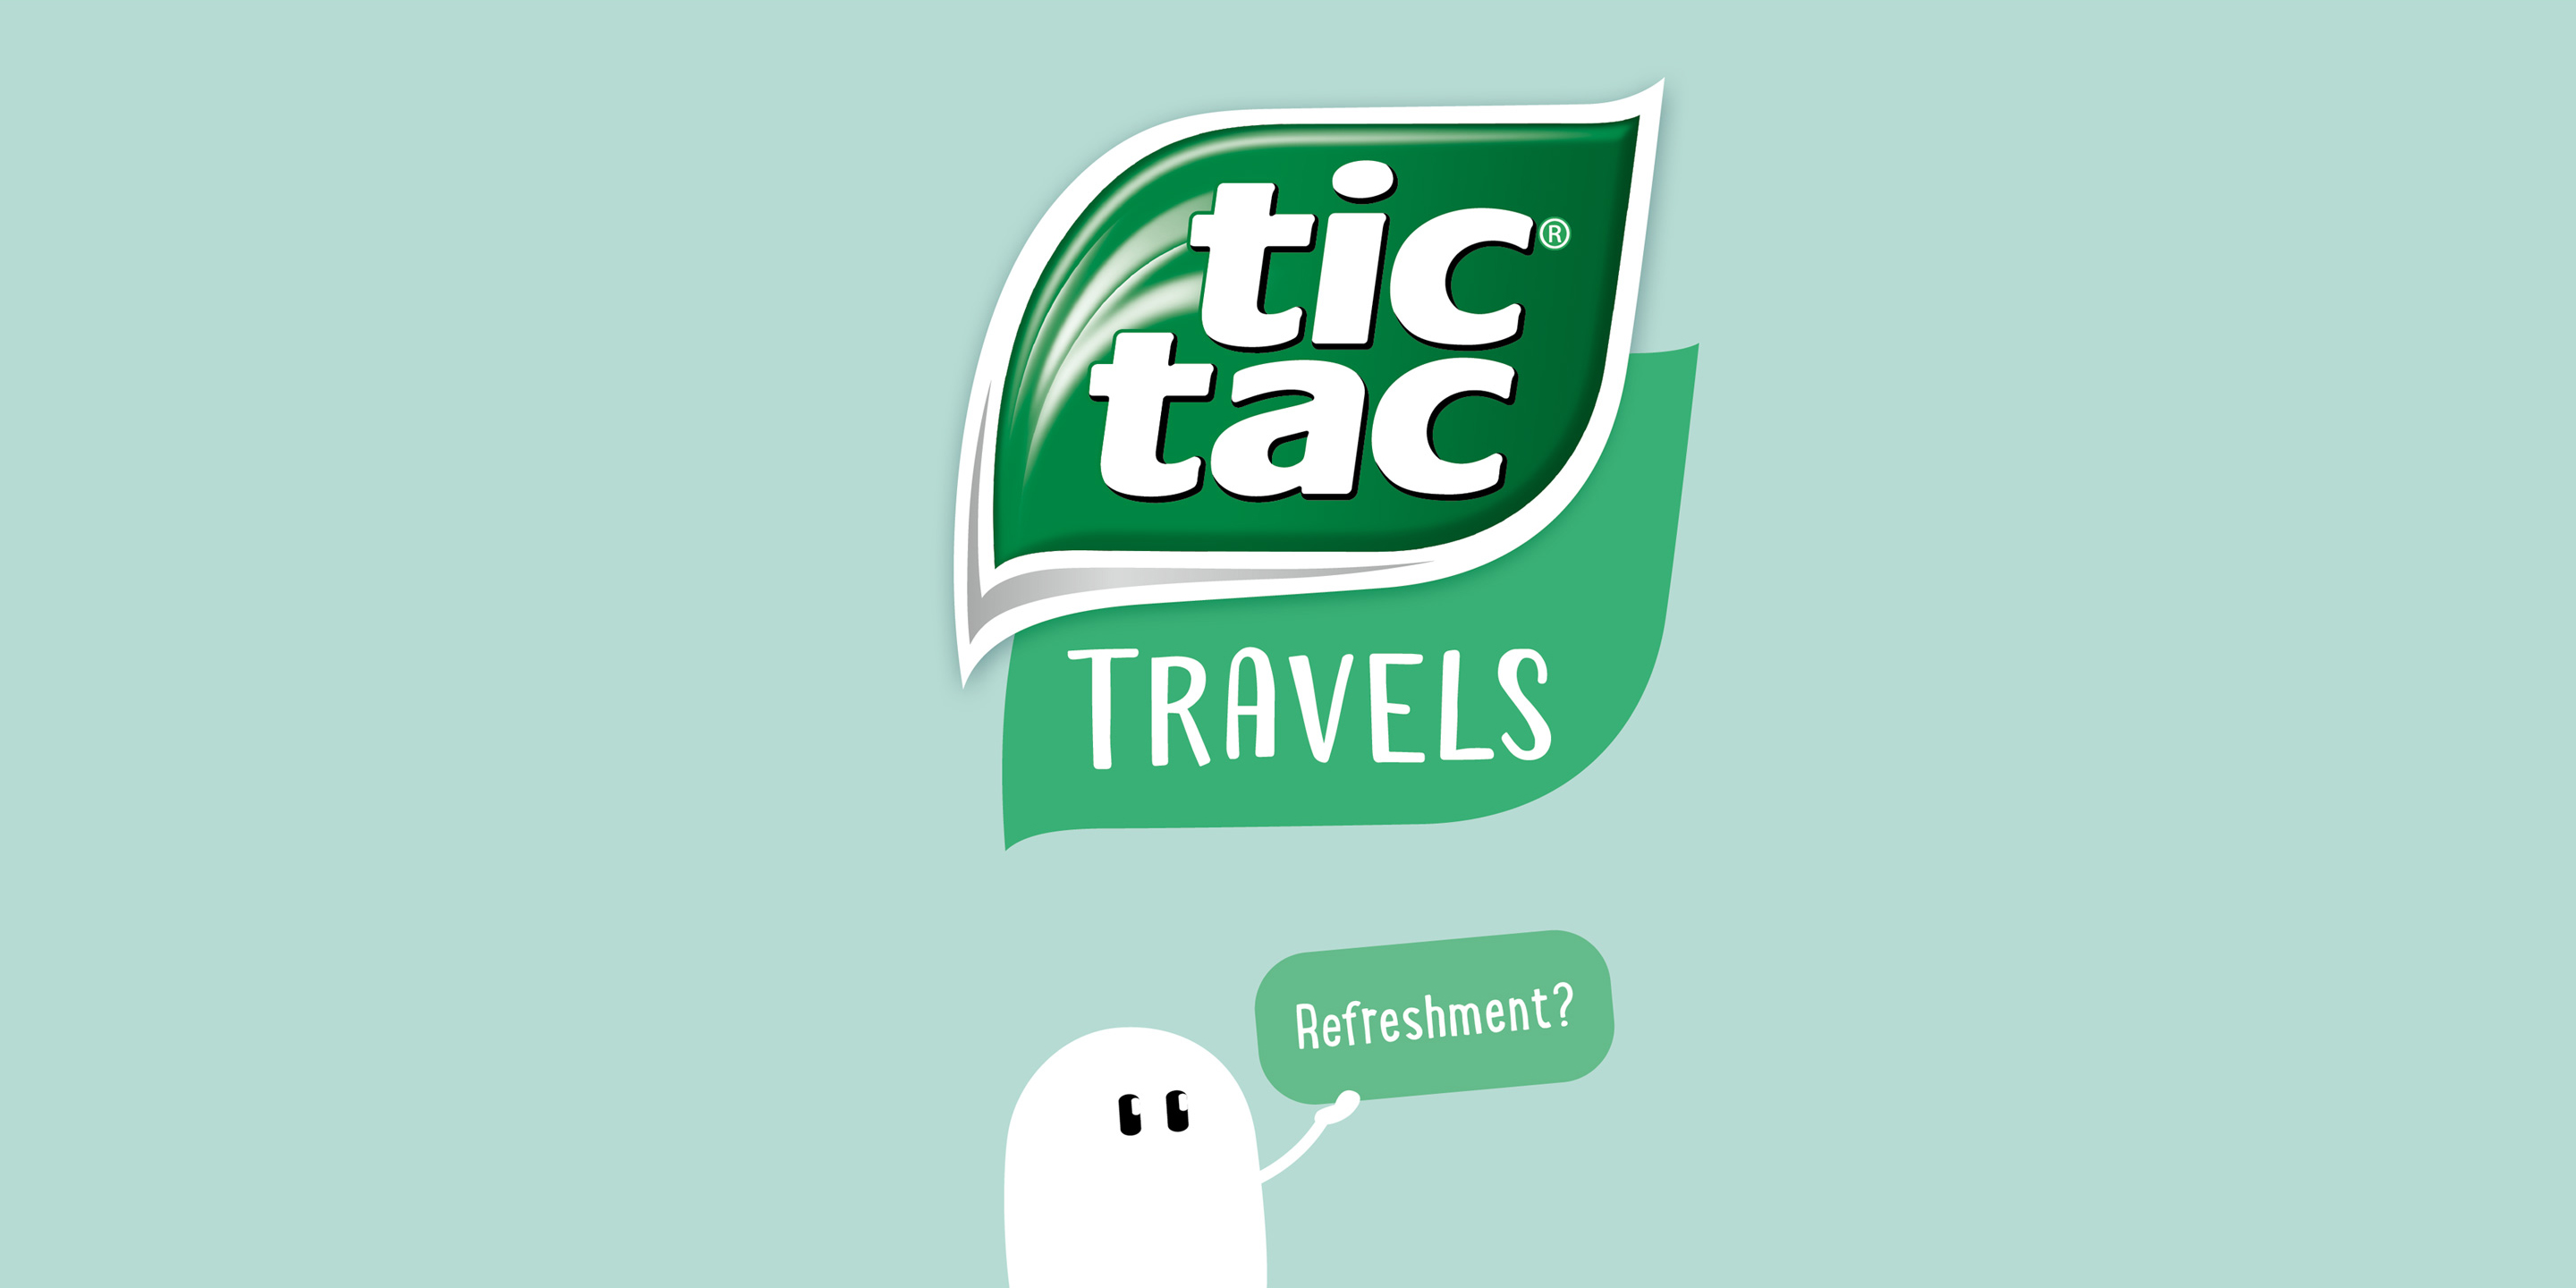 Tictac Travels Keyvisual